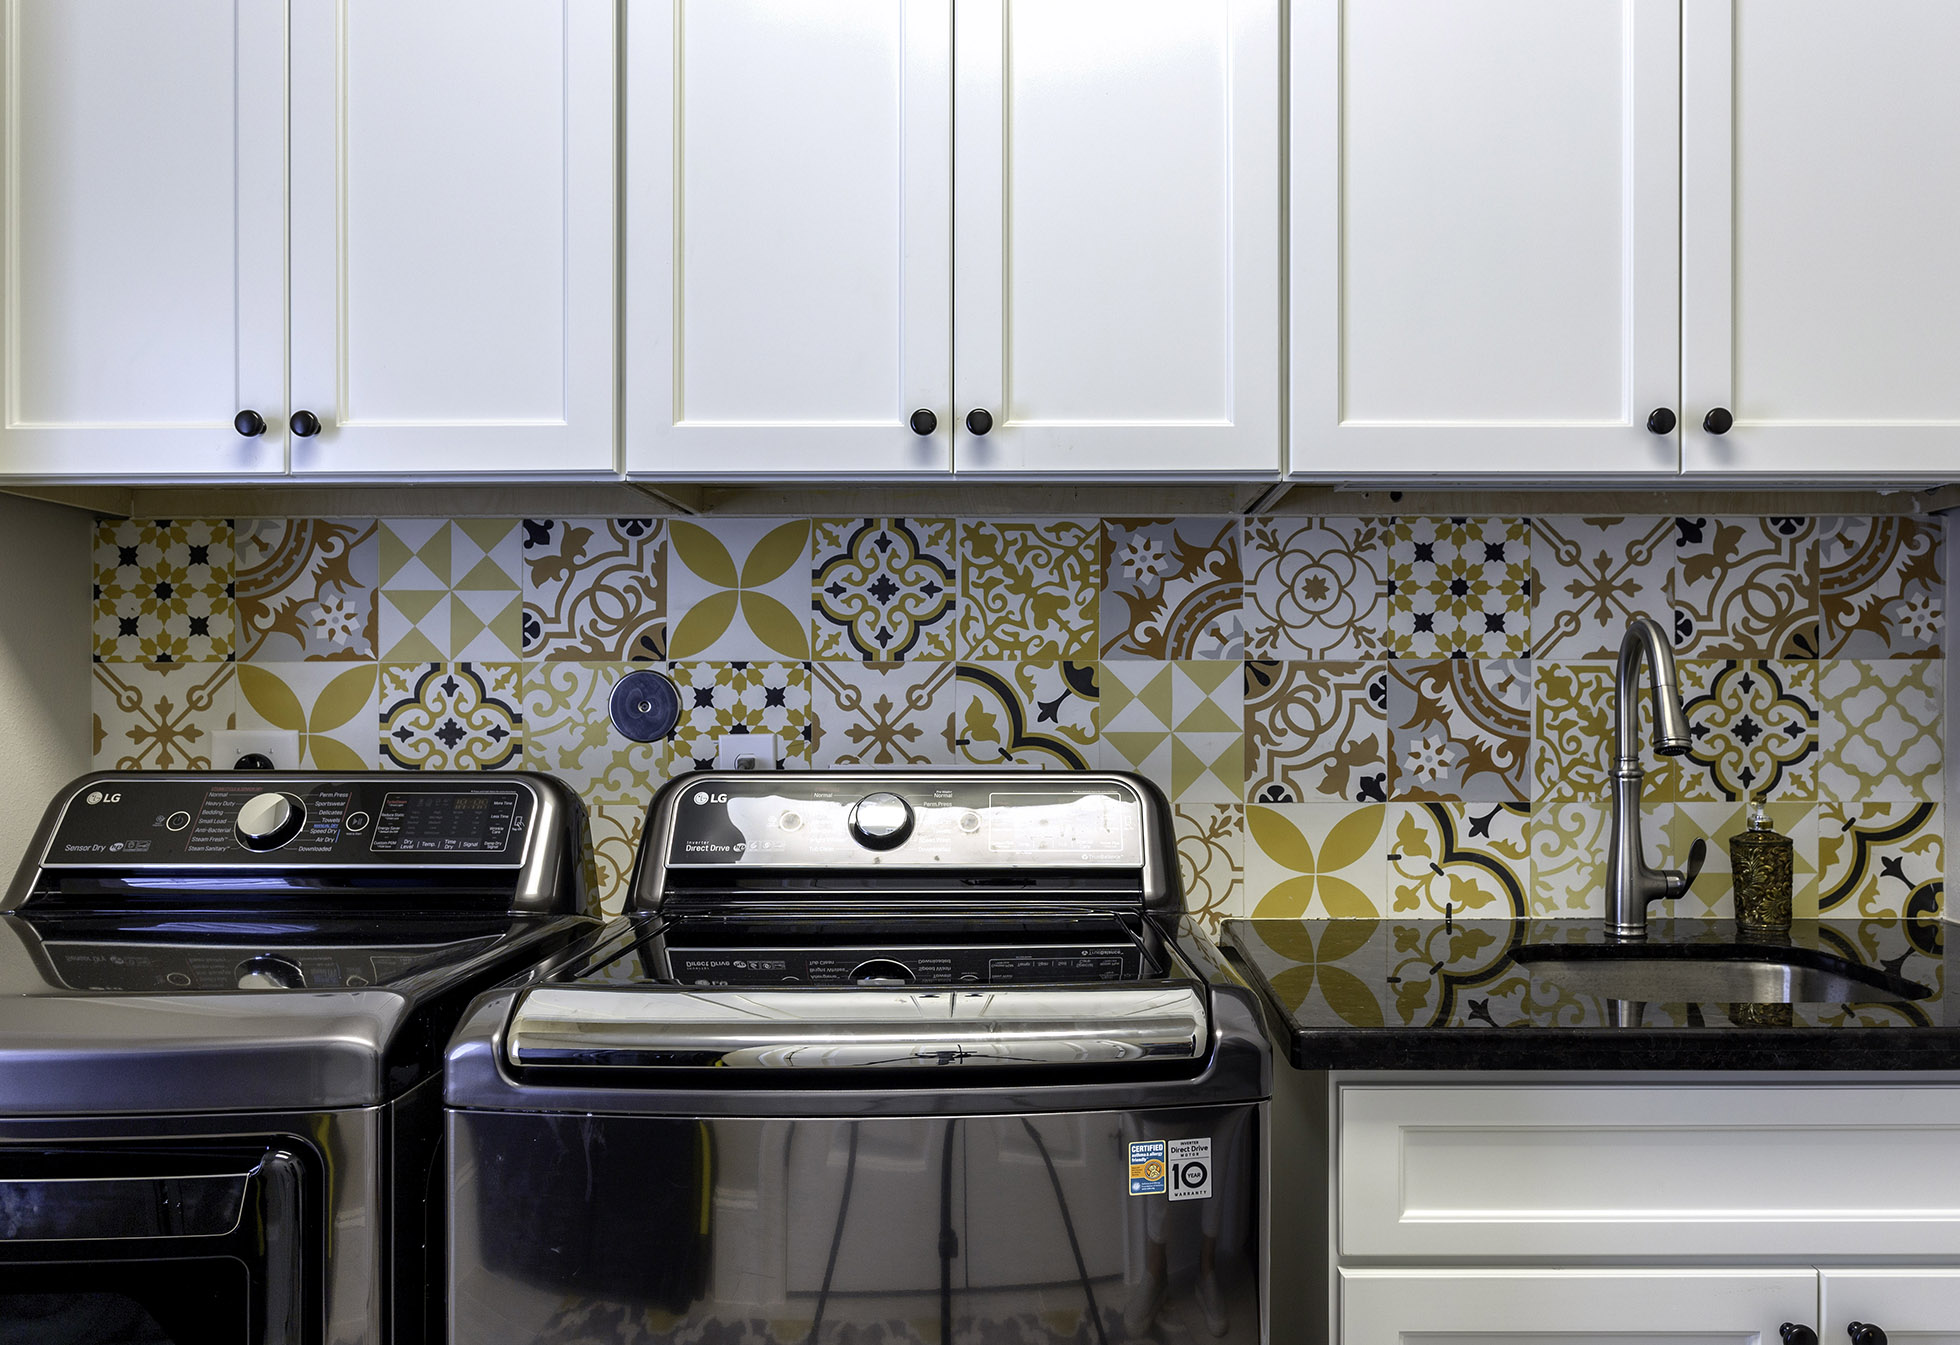 Washer and dryer side beside in front of colorful tile